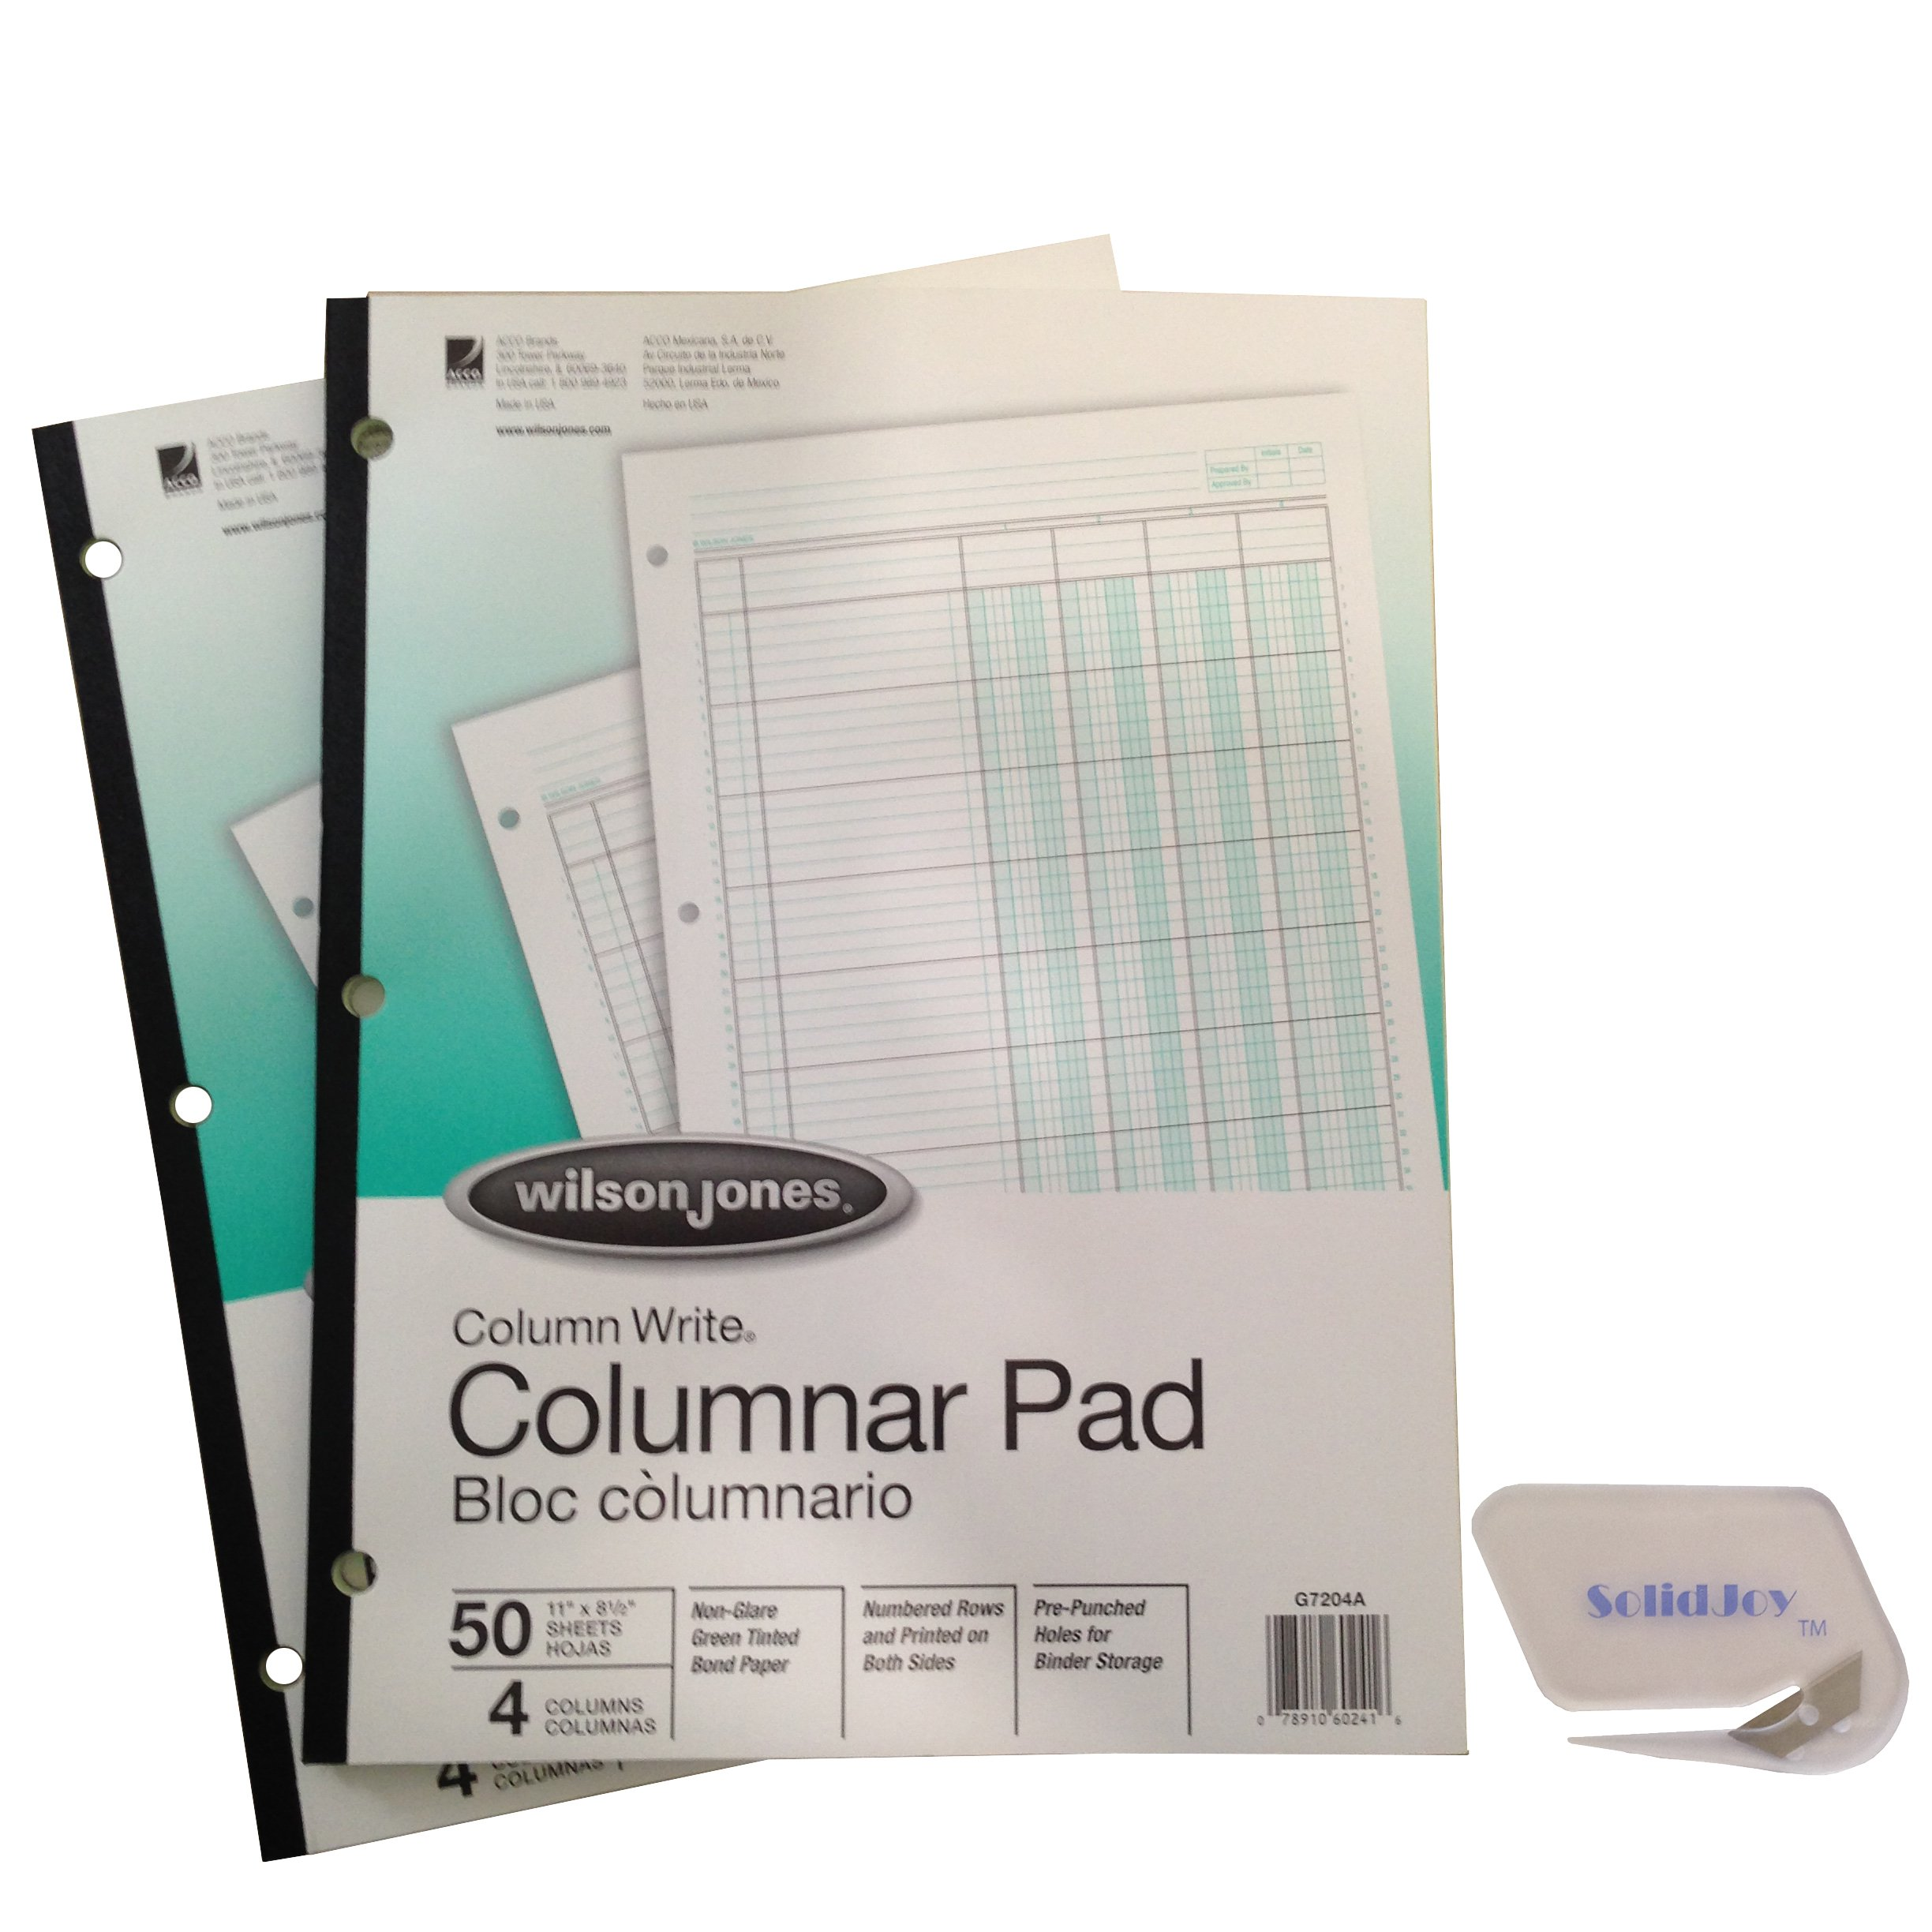 2 Pack – Wilson Jones ColumnWrite Columnar Pads (WG7204A), 11 x 8.5 Inch, 41 Lines per Page, 4 Columns, 50 Sheets a Pad Includes SolidJoy Letter Opener